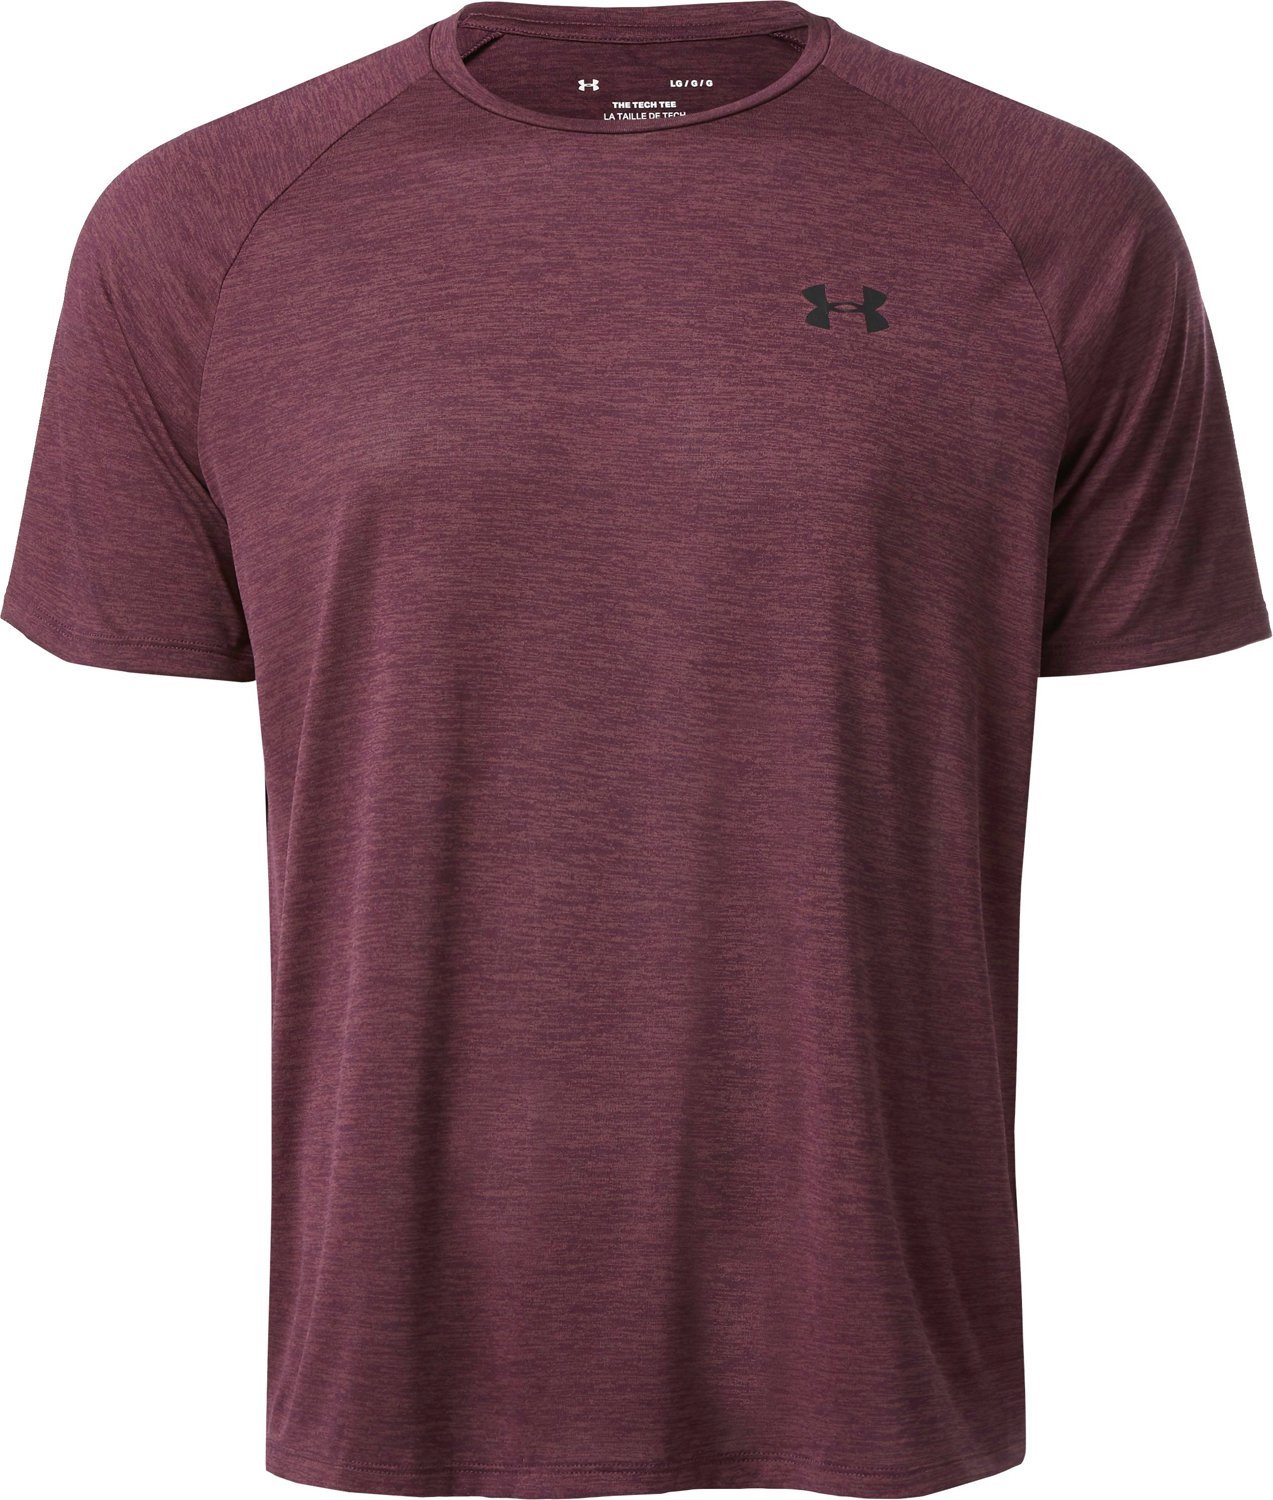 6d2a7125b2 Under Armour Men's UA Tech T-shirt